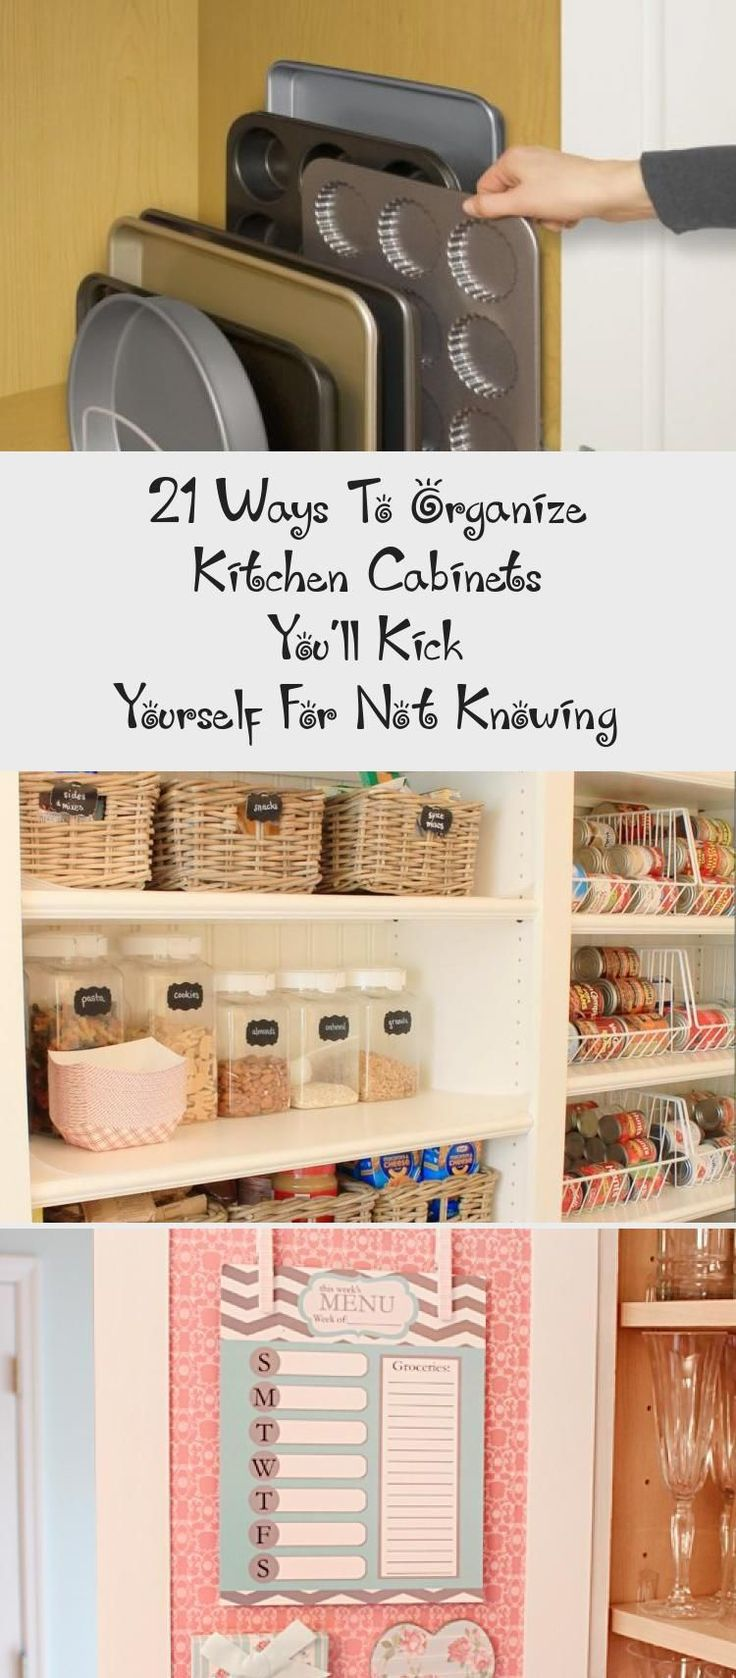 Most Current Cost Free 21 Ways To Organize Kitchen Cabinets You Ll Kick Yourself For Not Kno In 2020 Kitchen Cabinet Organization Kitchen Organization Kitchen Cabinets